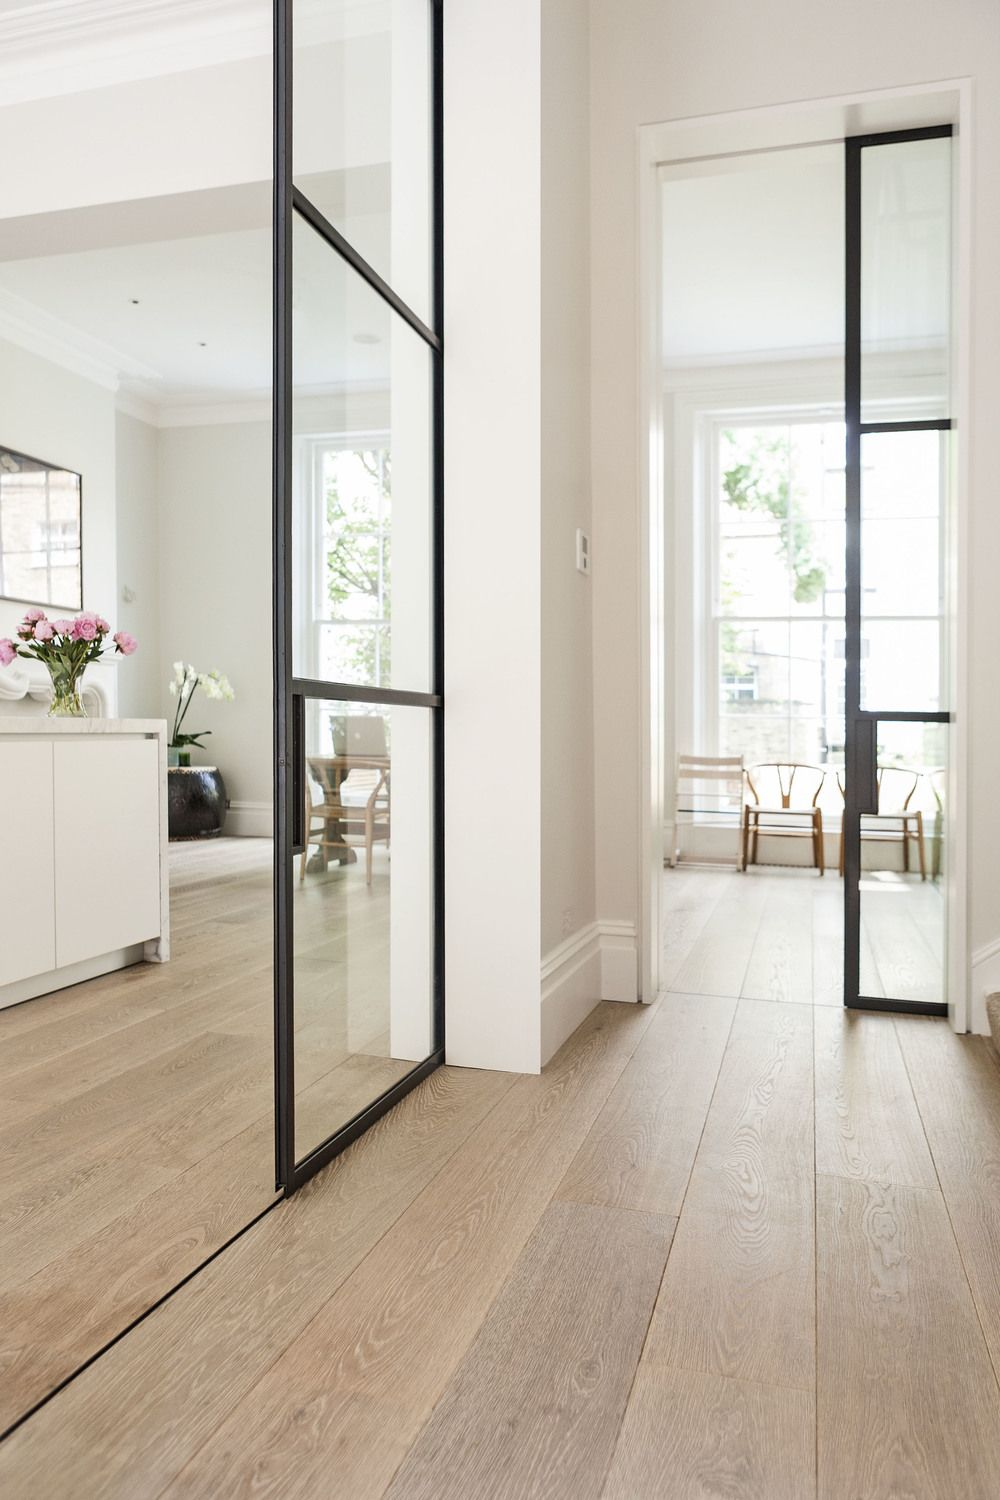 Integrated floor channel details en 2019 pinterest - Puertas correderas de salon ...